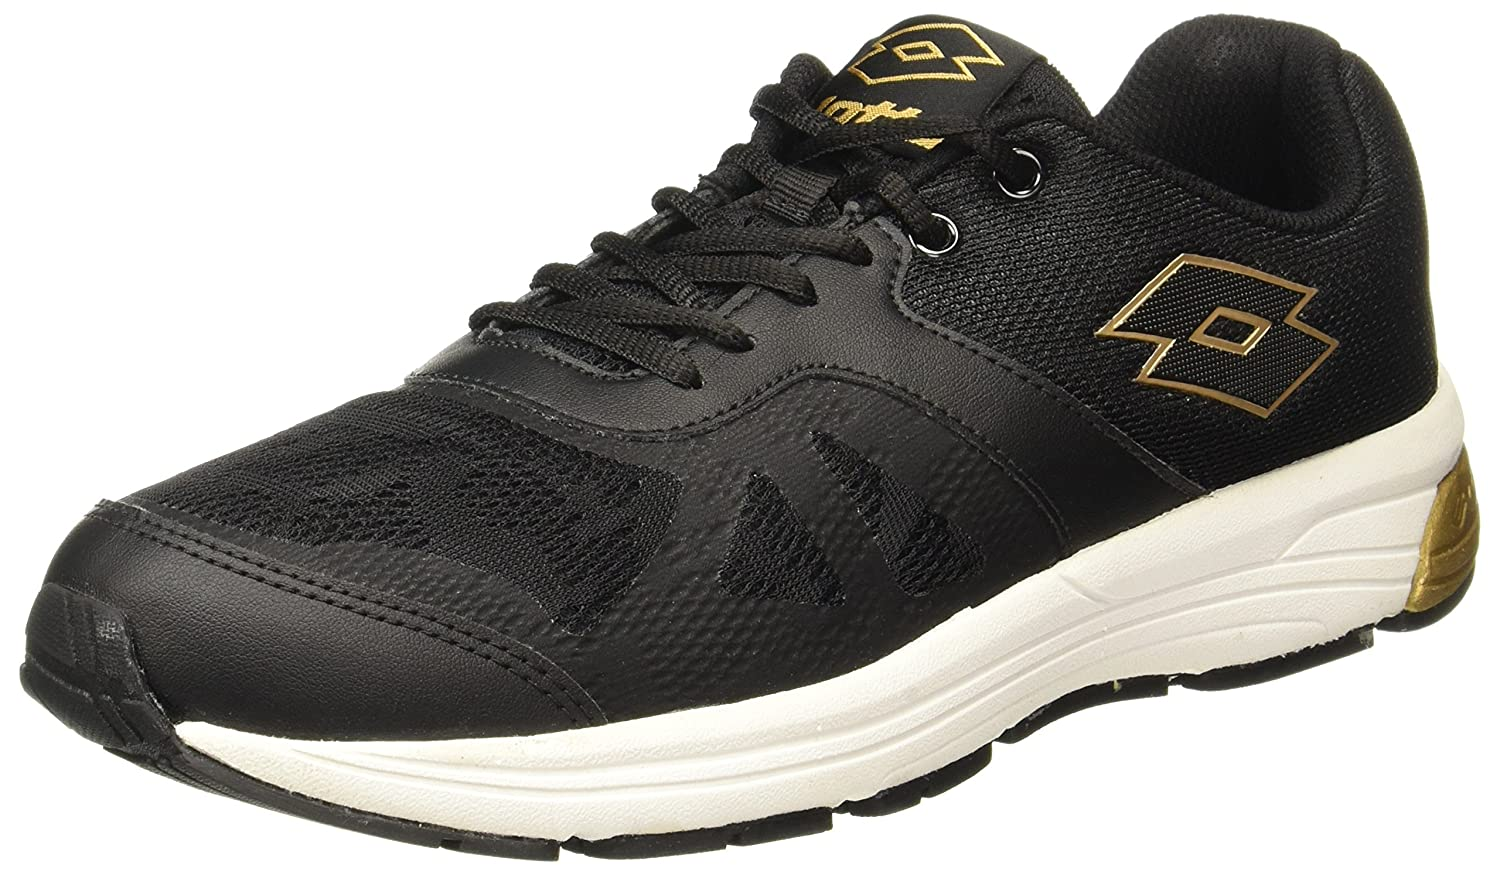 Buy Lotto Men's Sport Running Shoes at